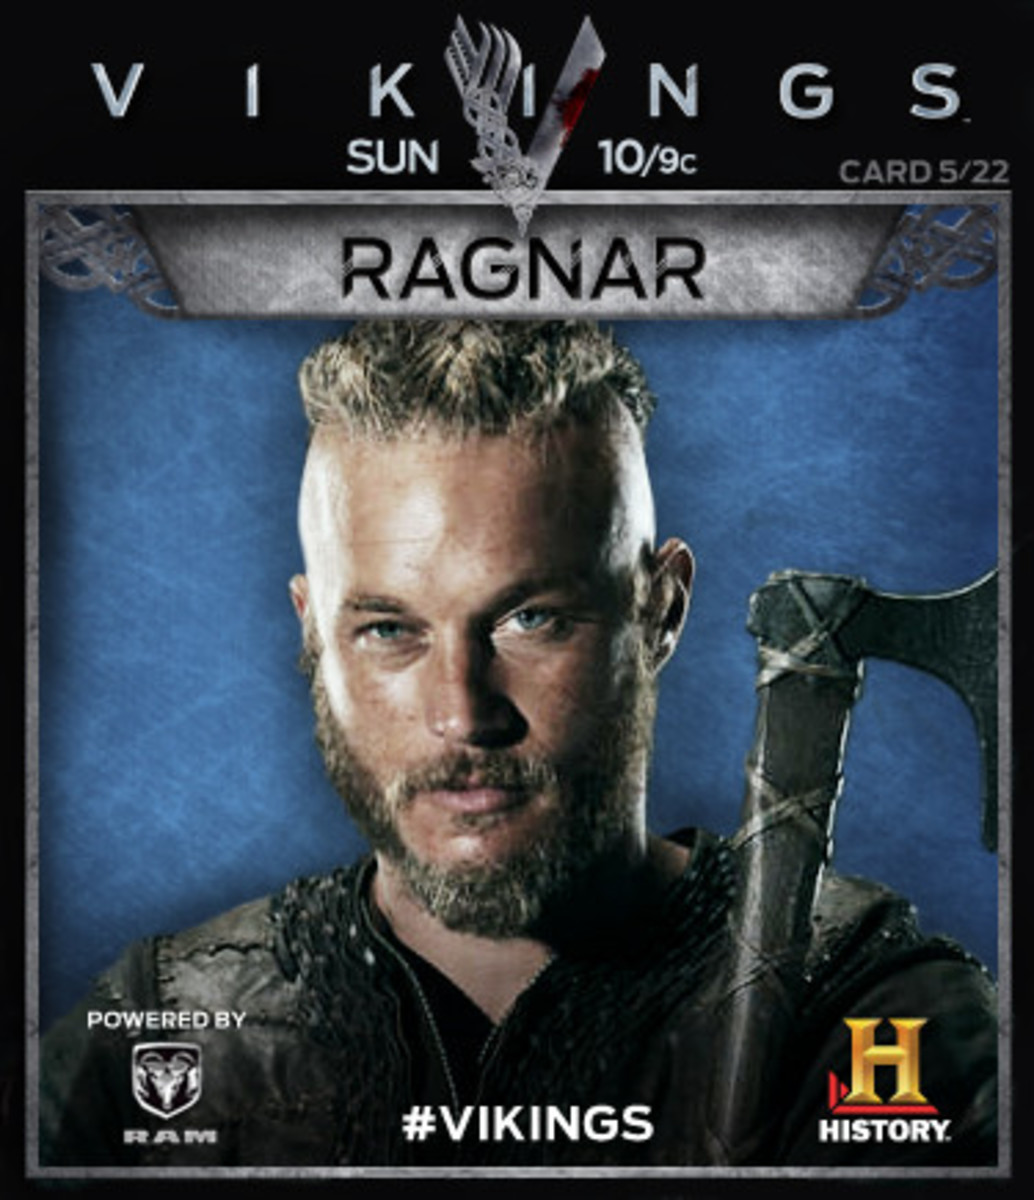 Do we see Ragnar go 'Berserker' in some battles?